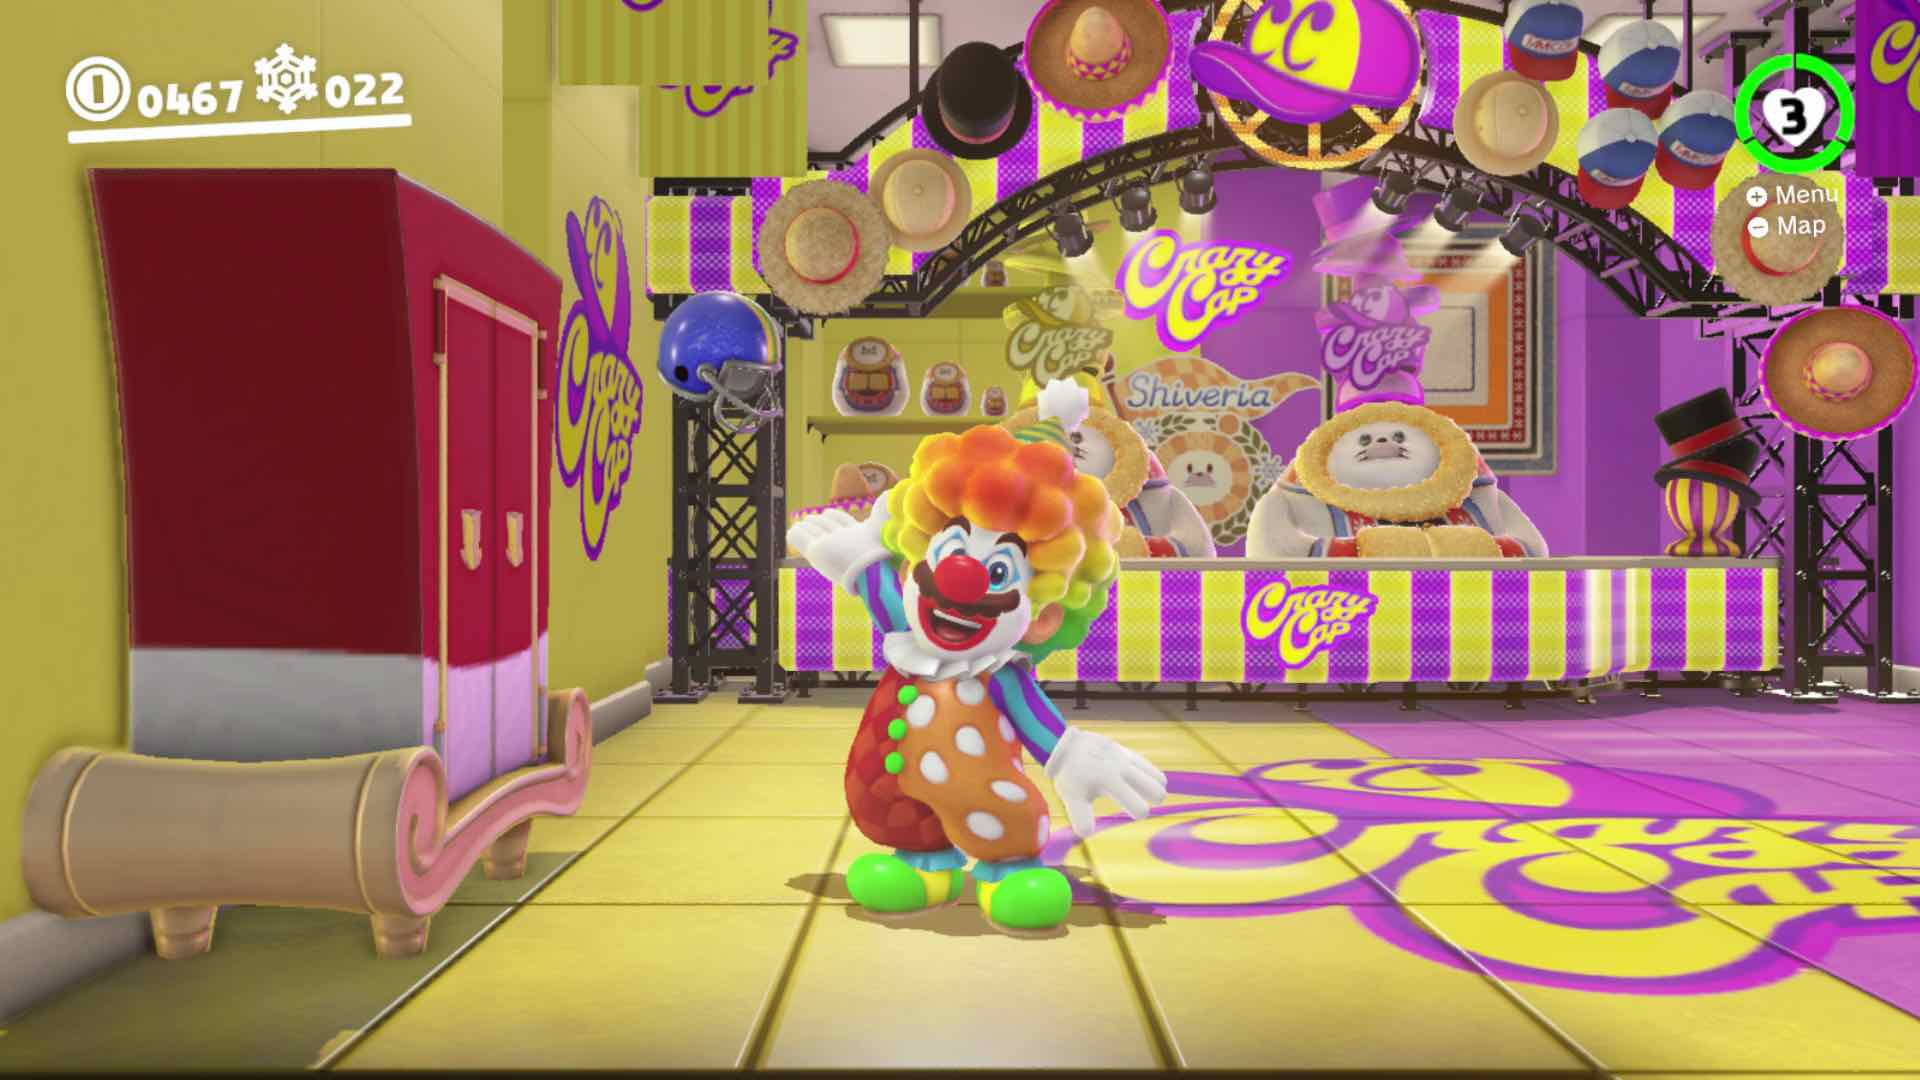 clown-suit-super-mario-odyssey-screenshot